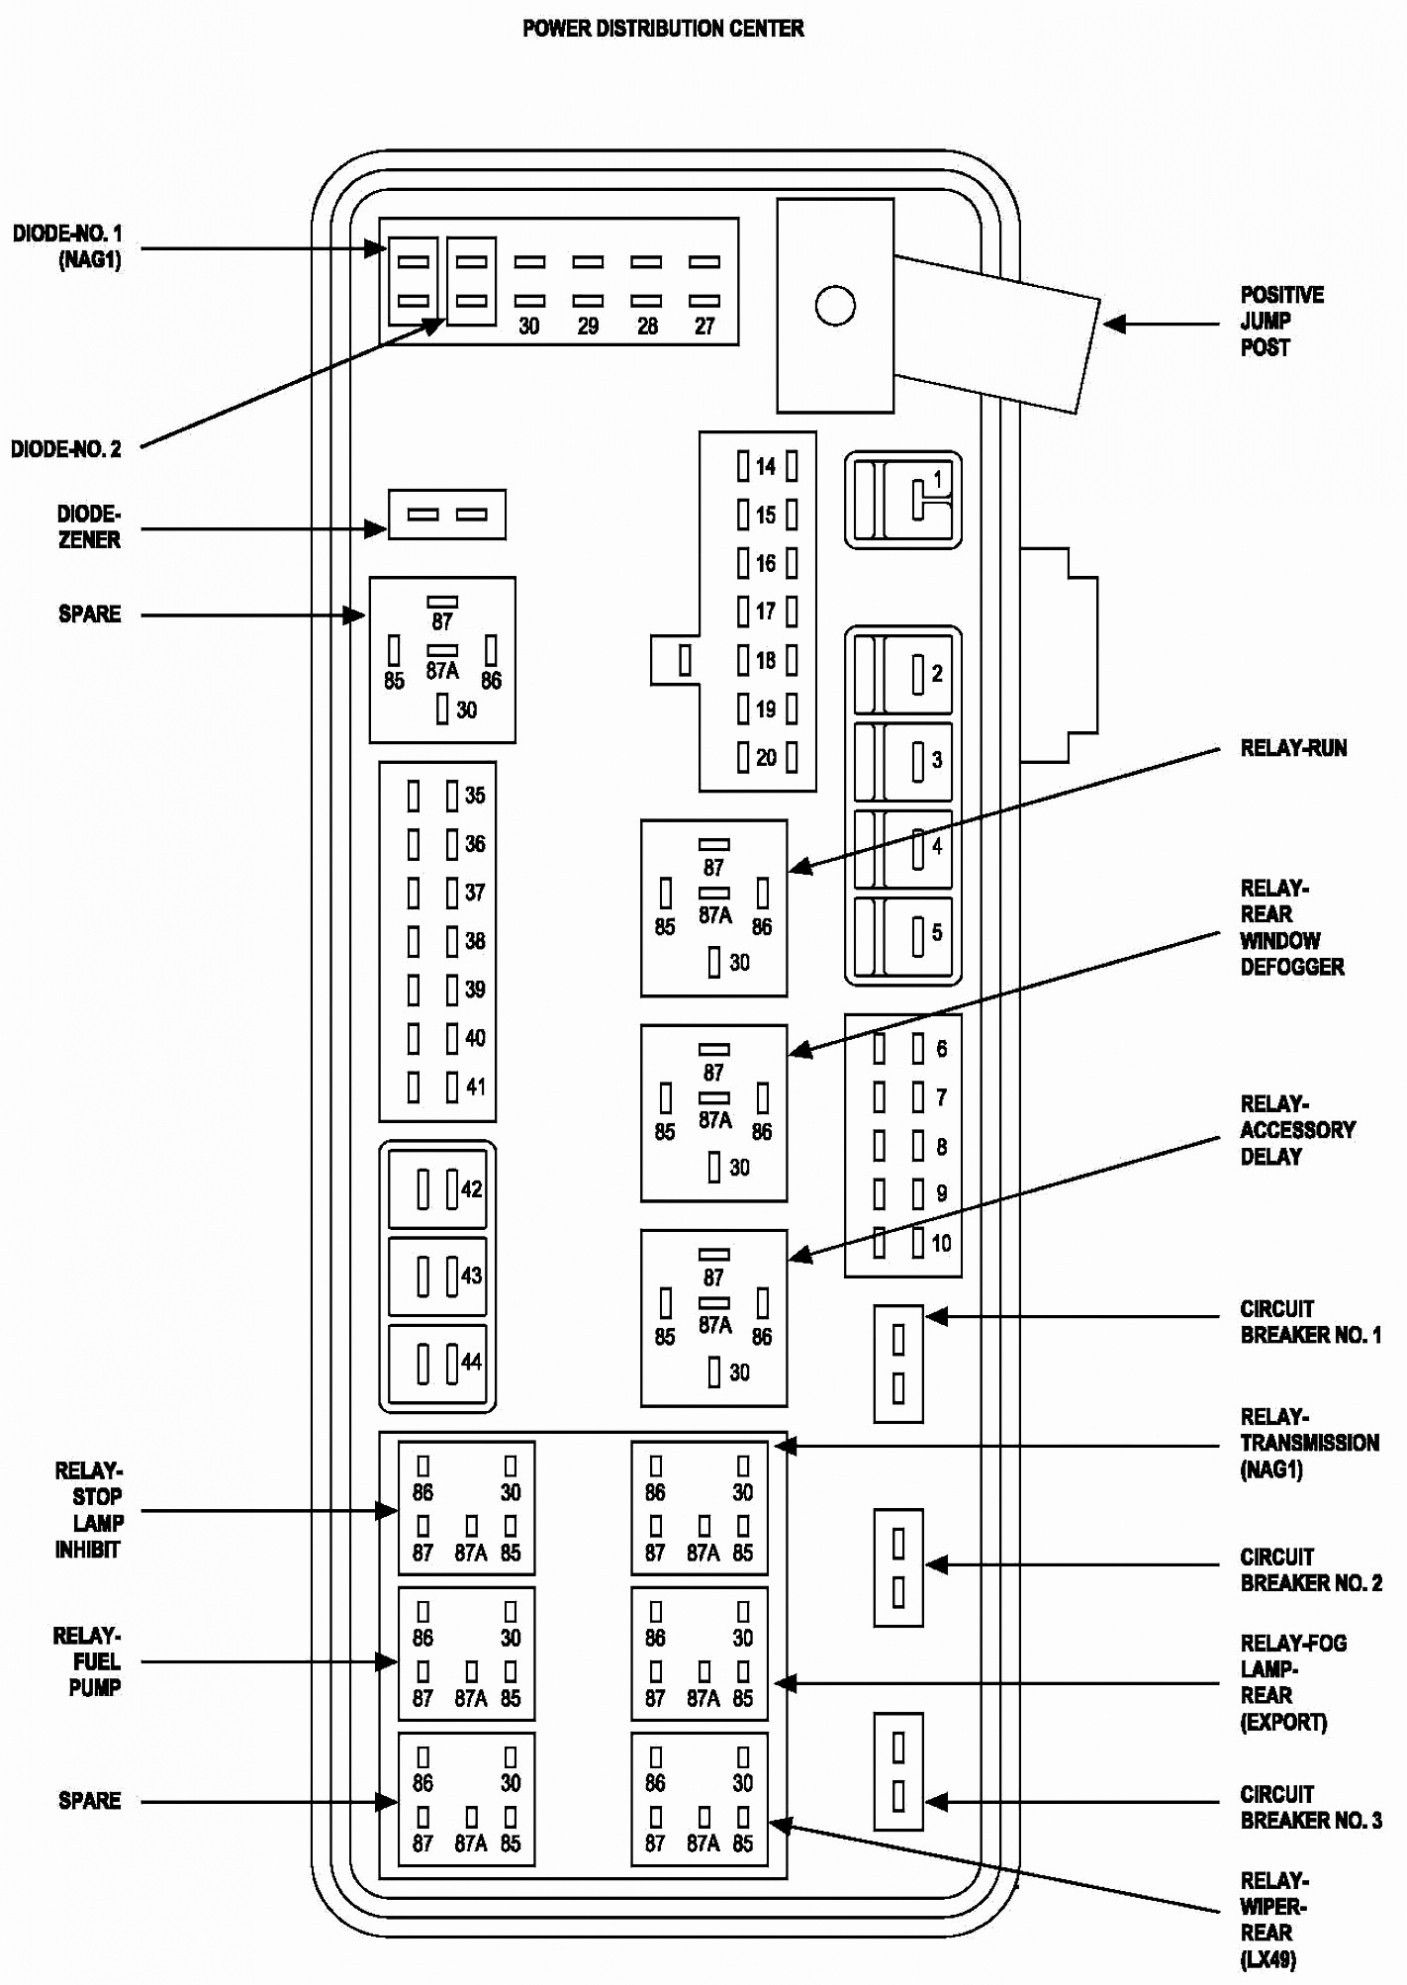 New Bmw E46 Cluster Wiring Diagram | Dodge ram 1500, 2012 dodge charger,  Fuse boxPinterest